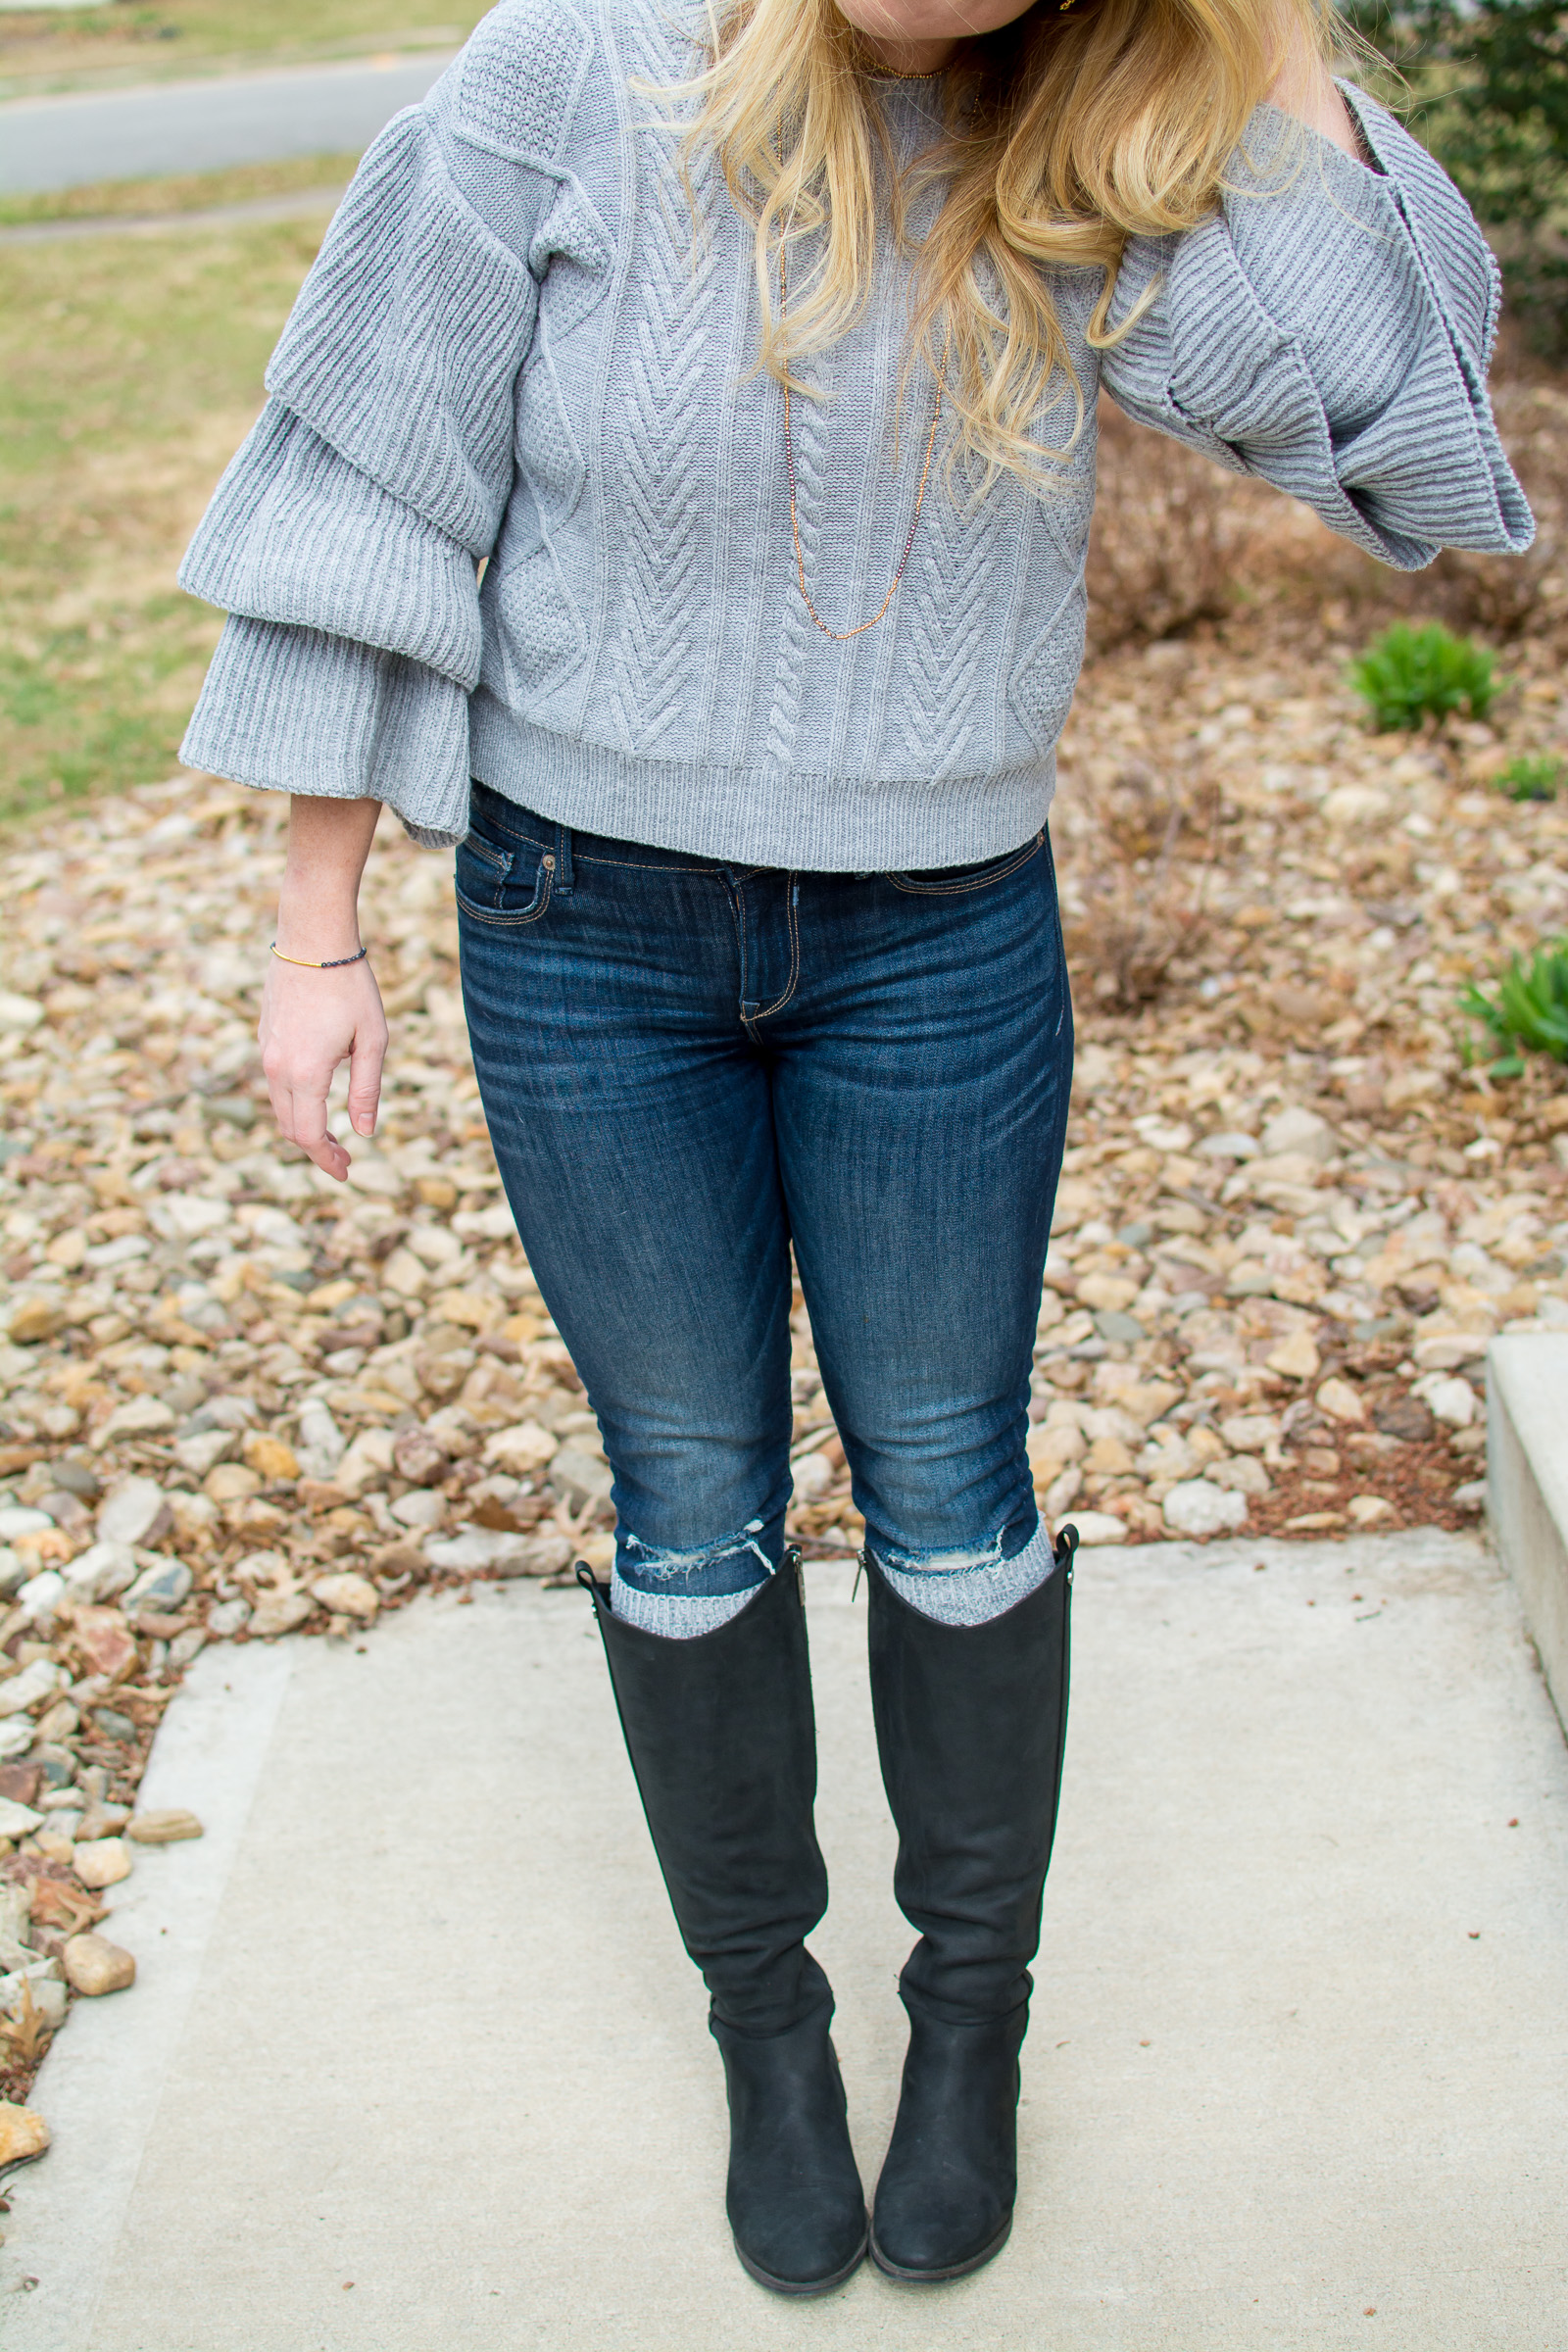 Super Ruffled Sweater + Riding Boots. | Ashley from Le Stylo Rouge